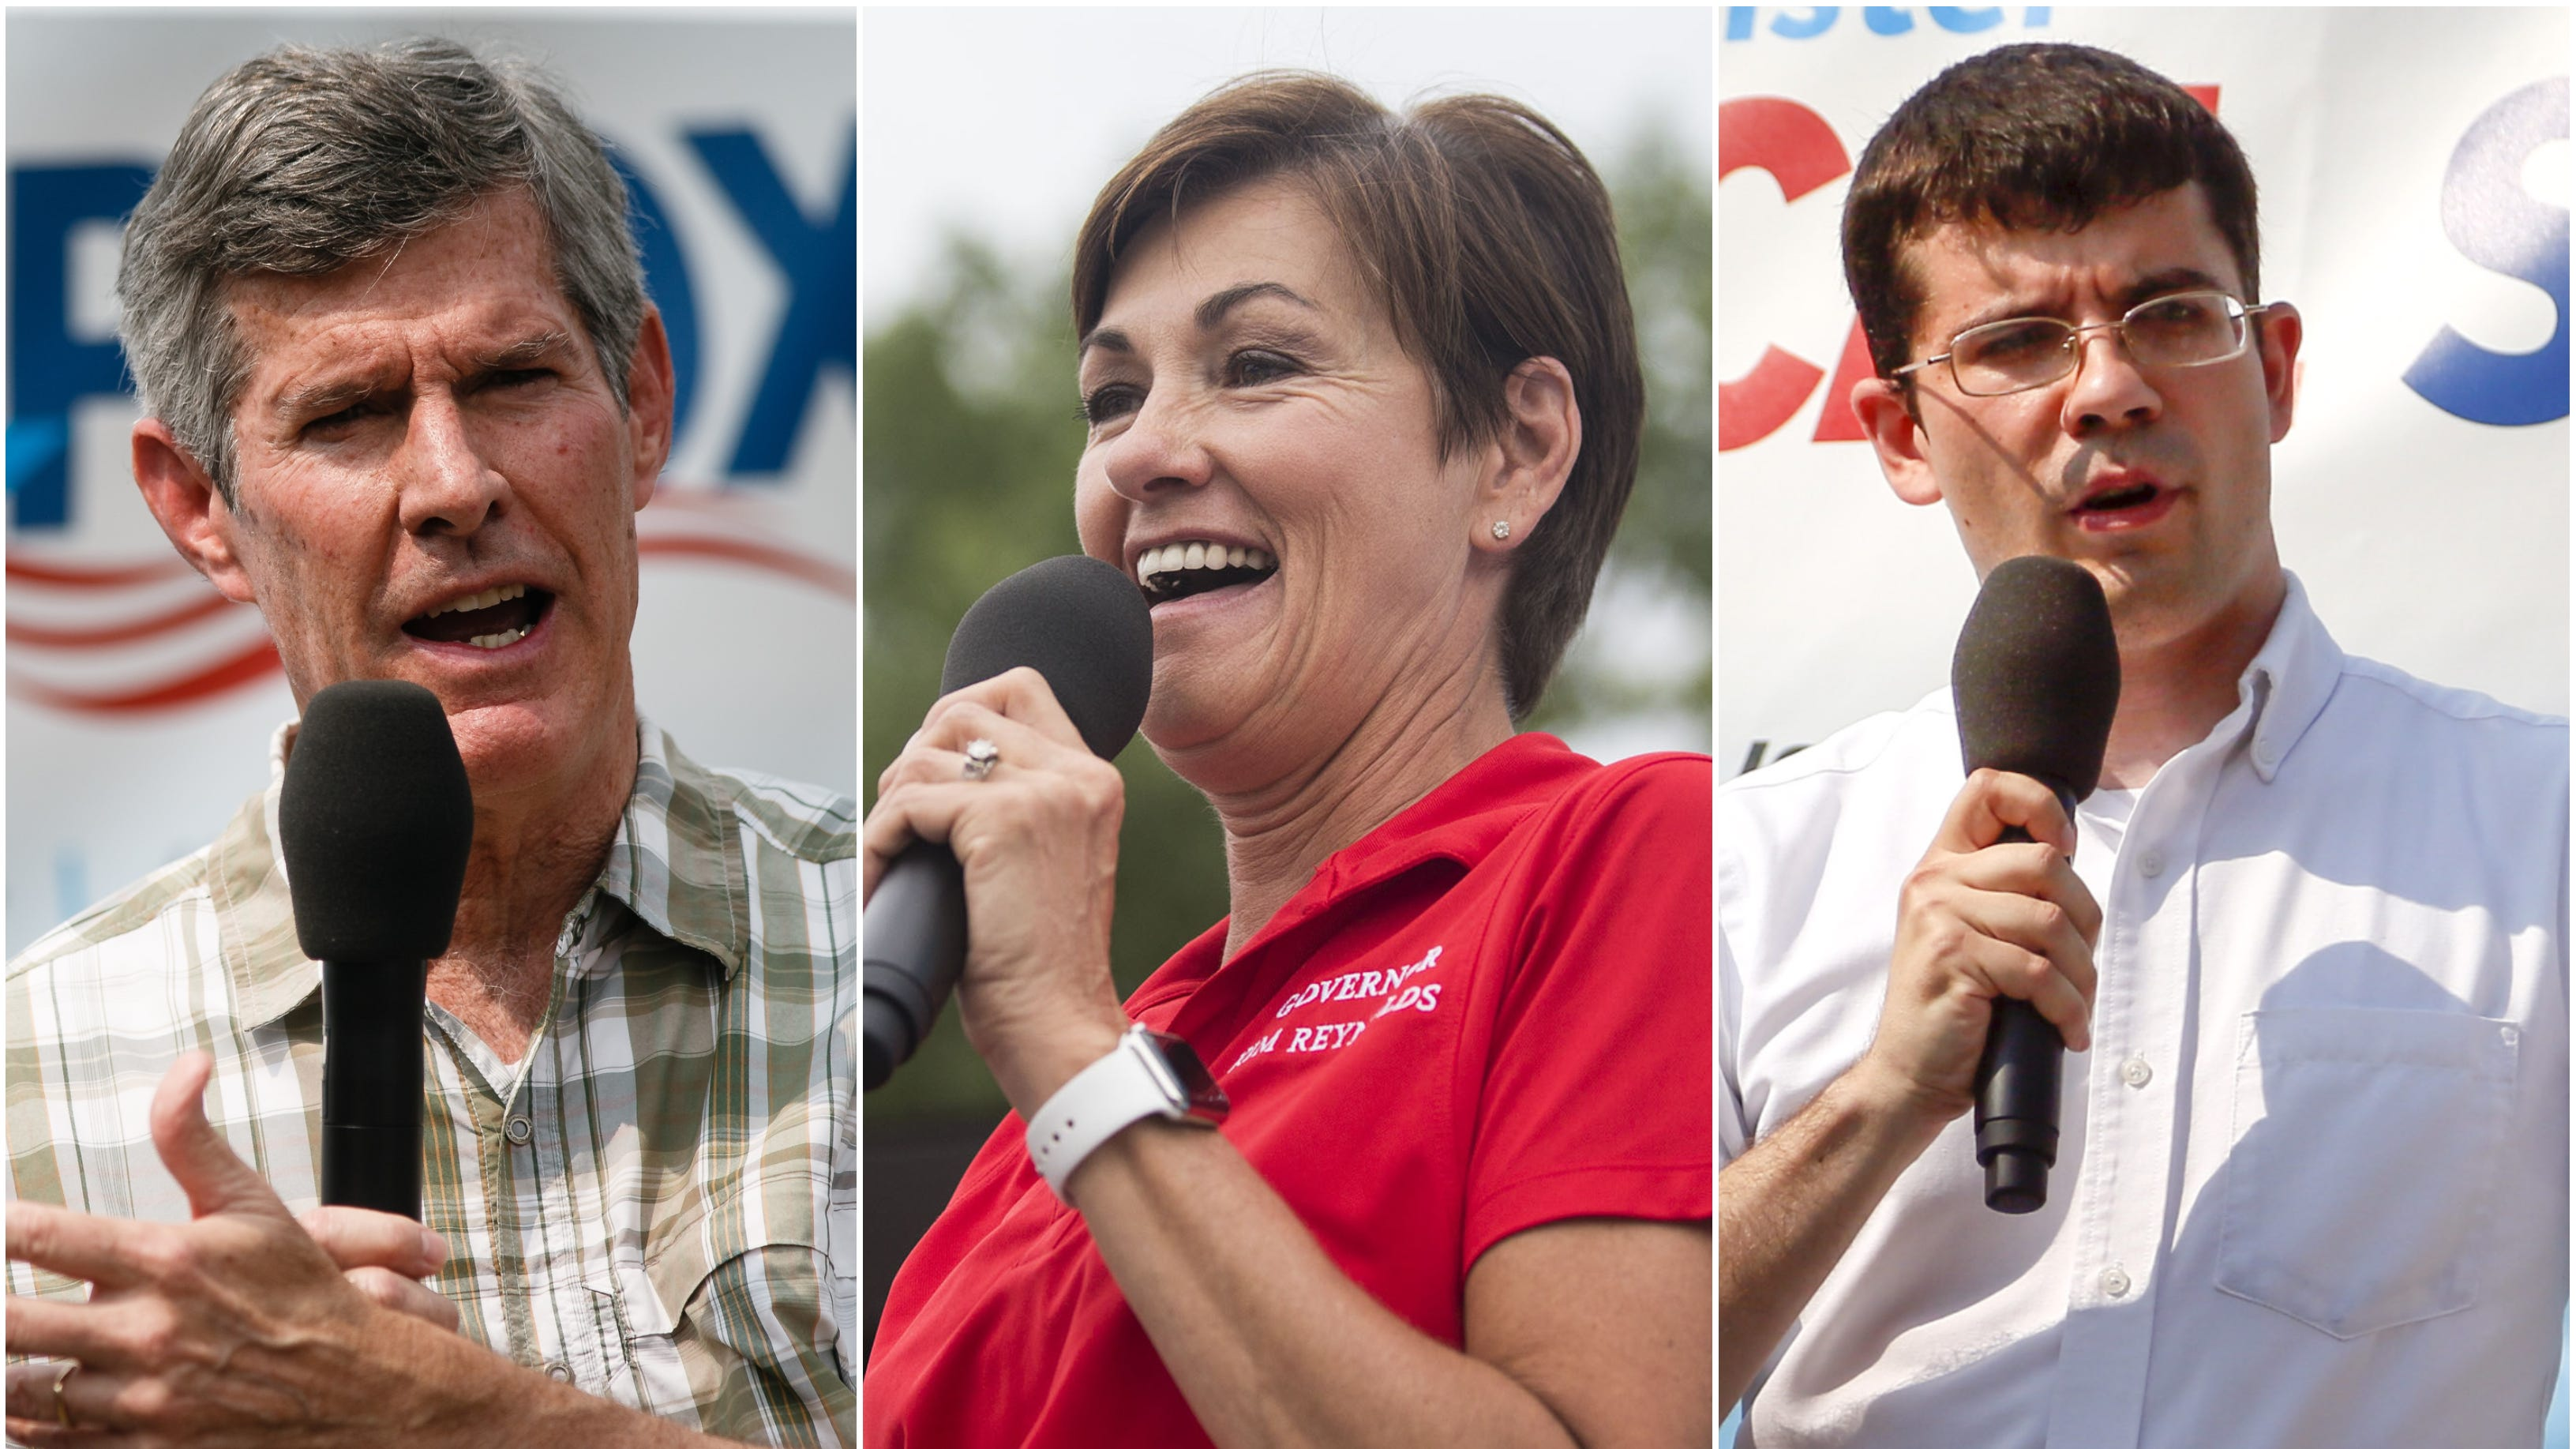 Iowa Poll: Democrat Fred Hubbell narrowly leads Republican Kim Reynolds in governor's race